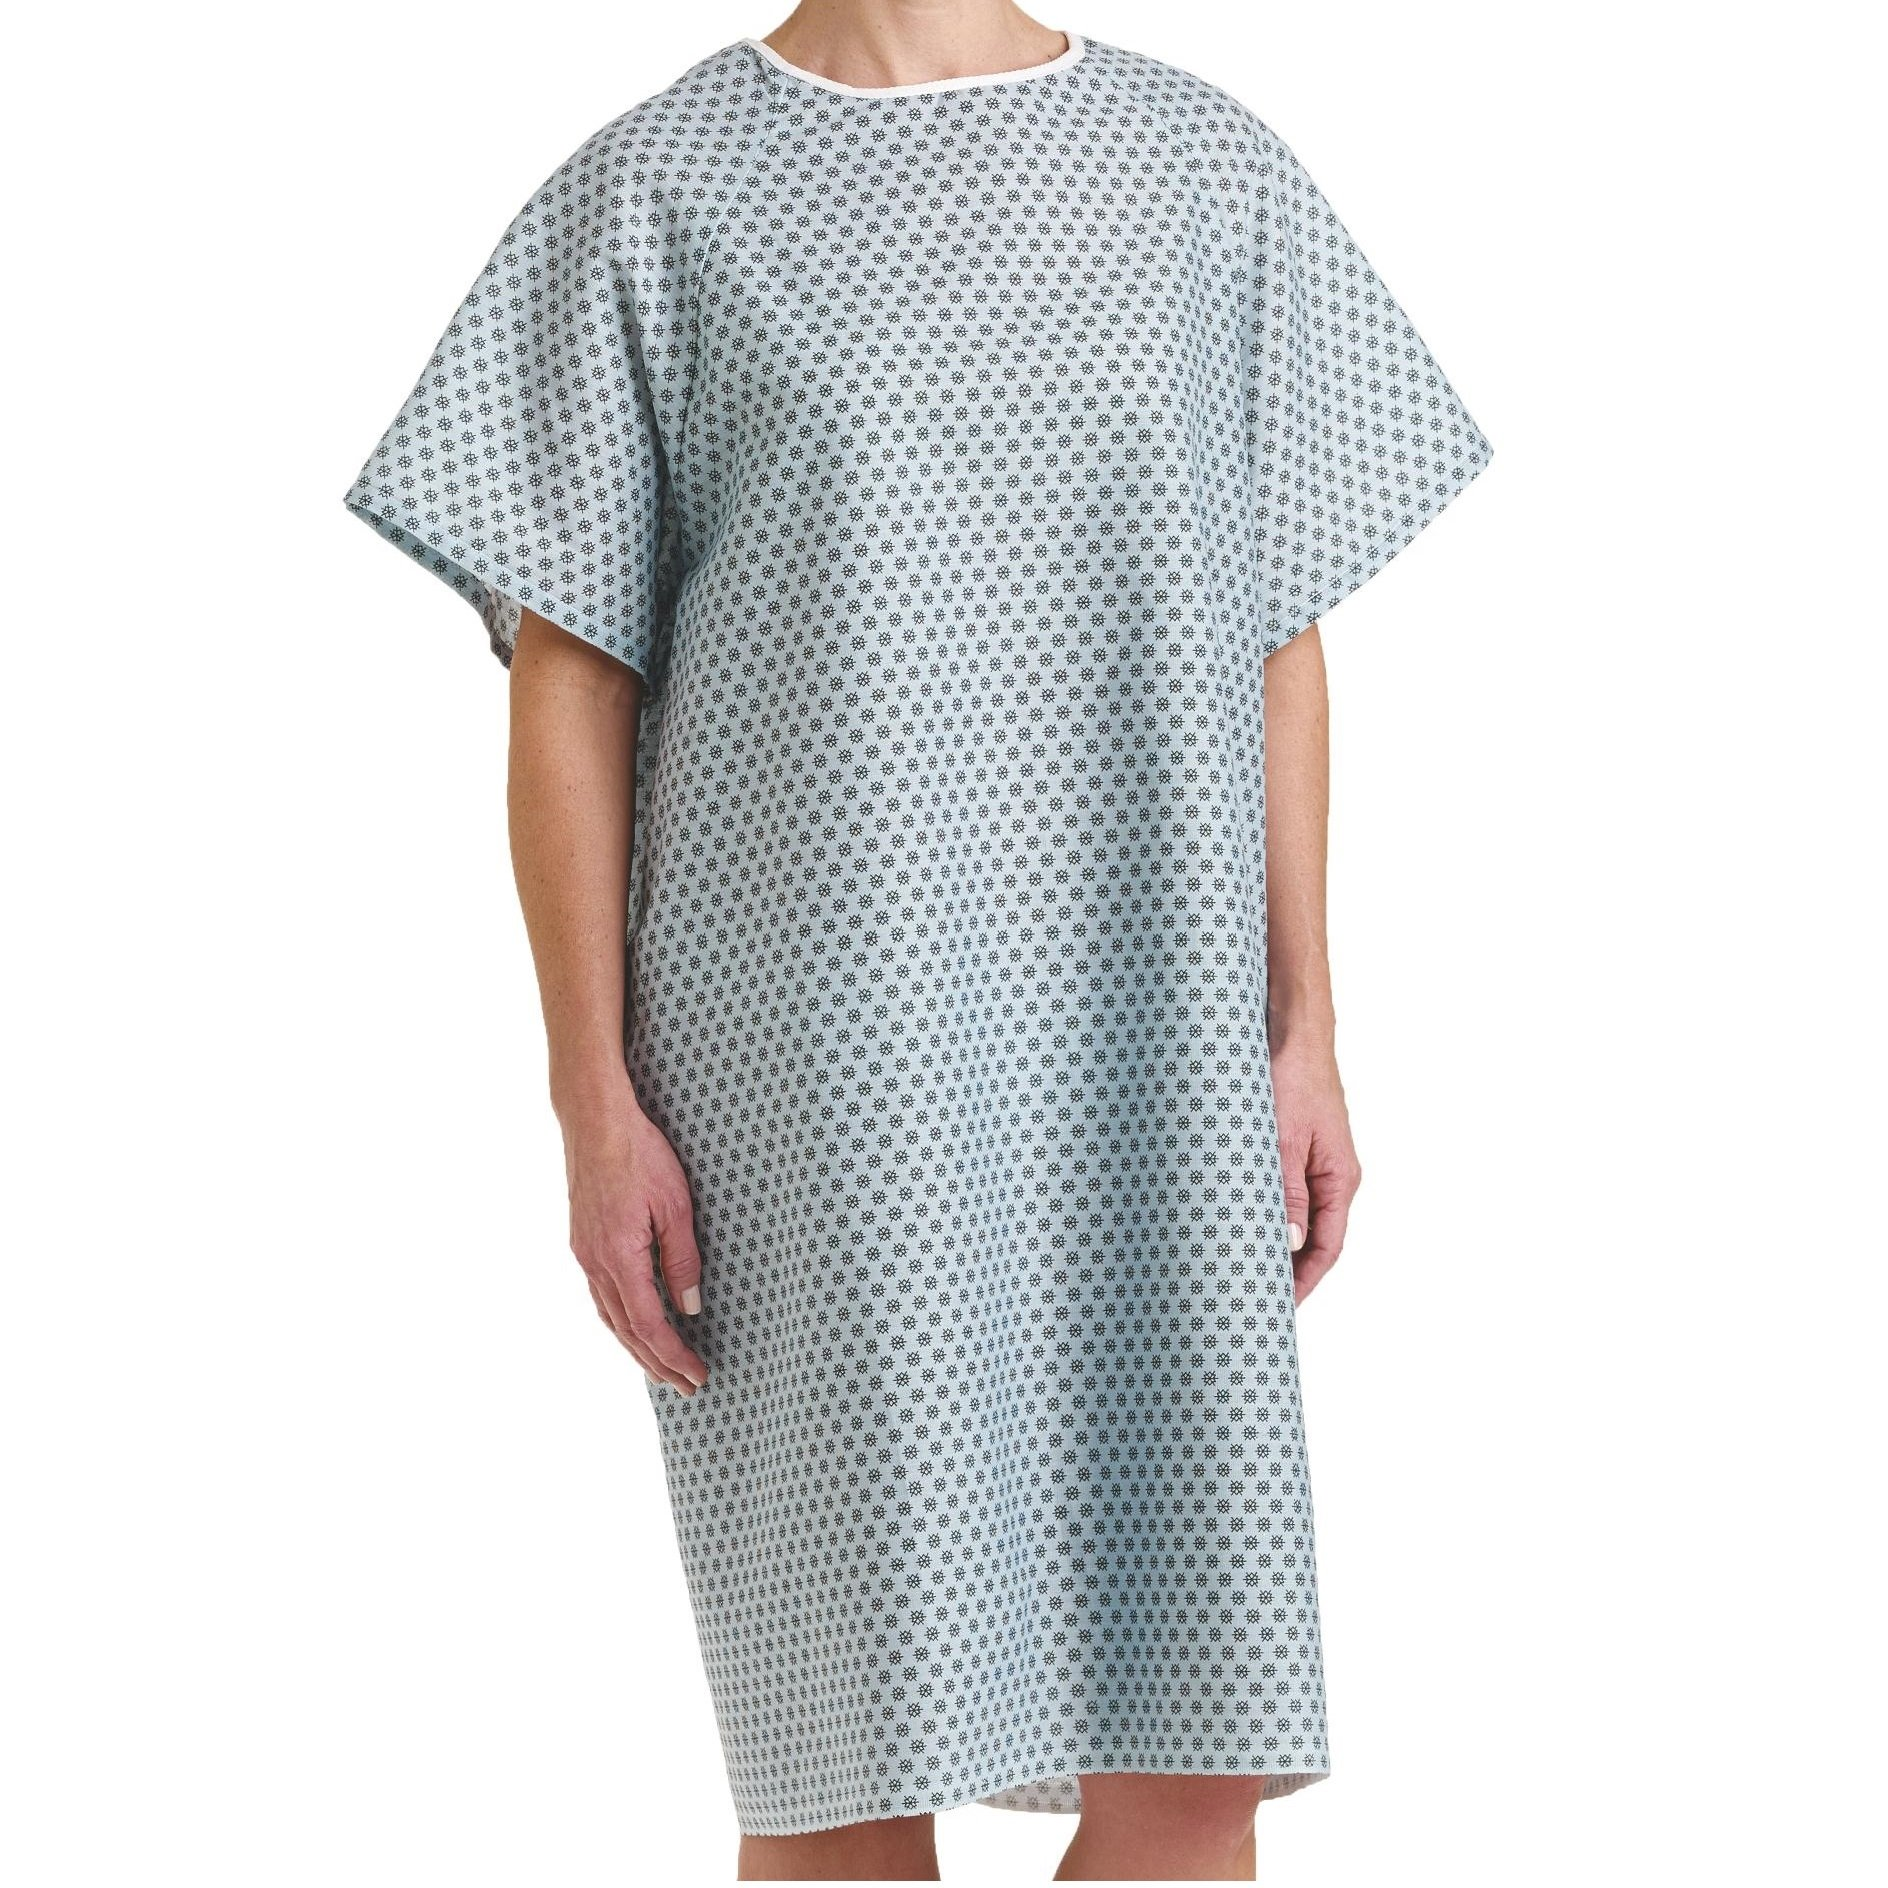 Deluxe Patient Hospital Gown, Easy Care, Soft & Comfortable Gowns - 12Pk